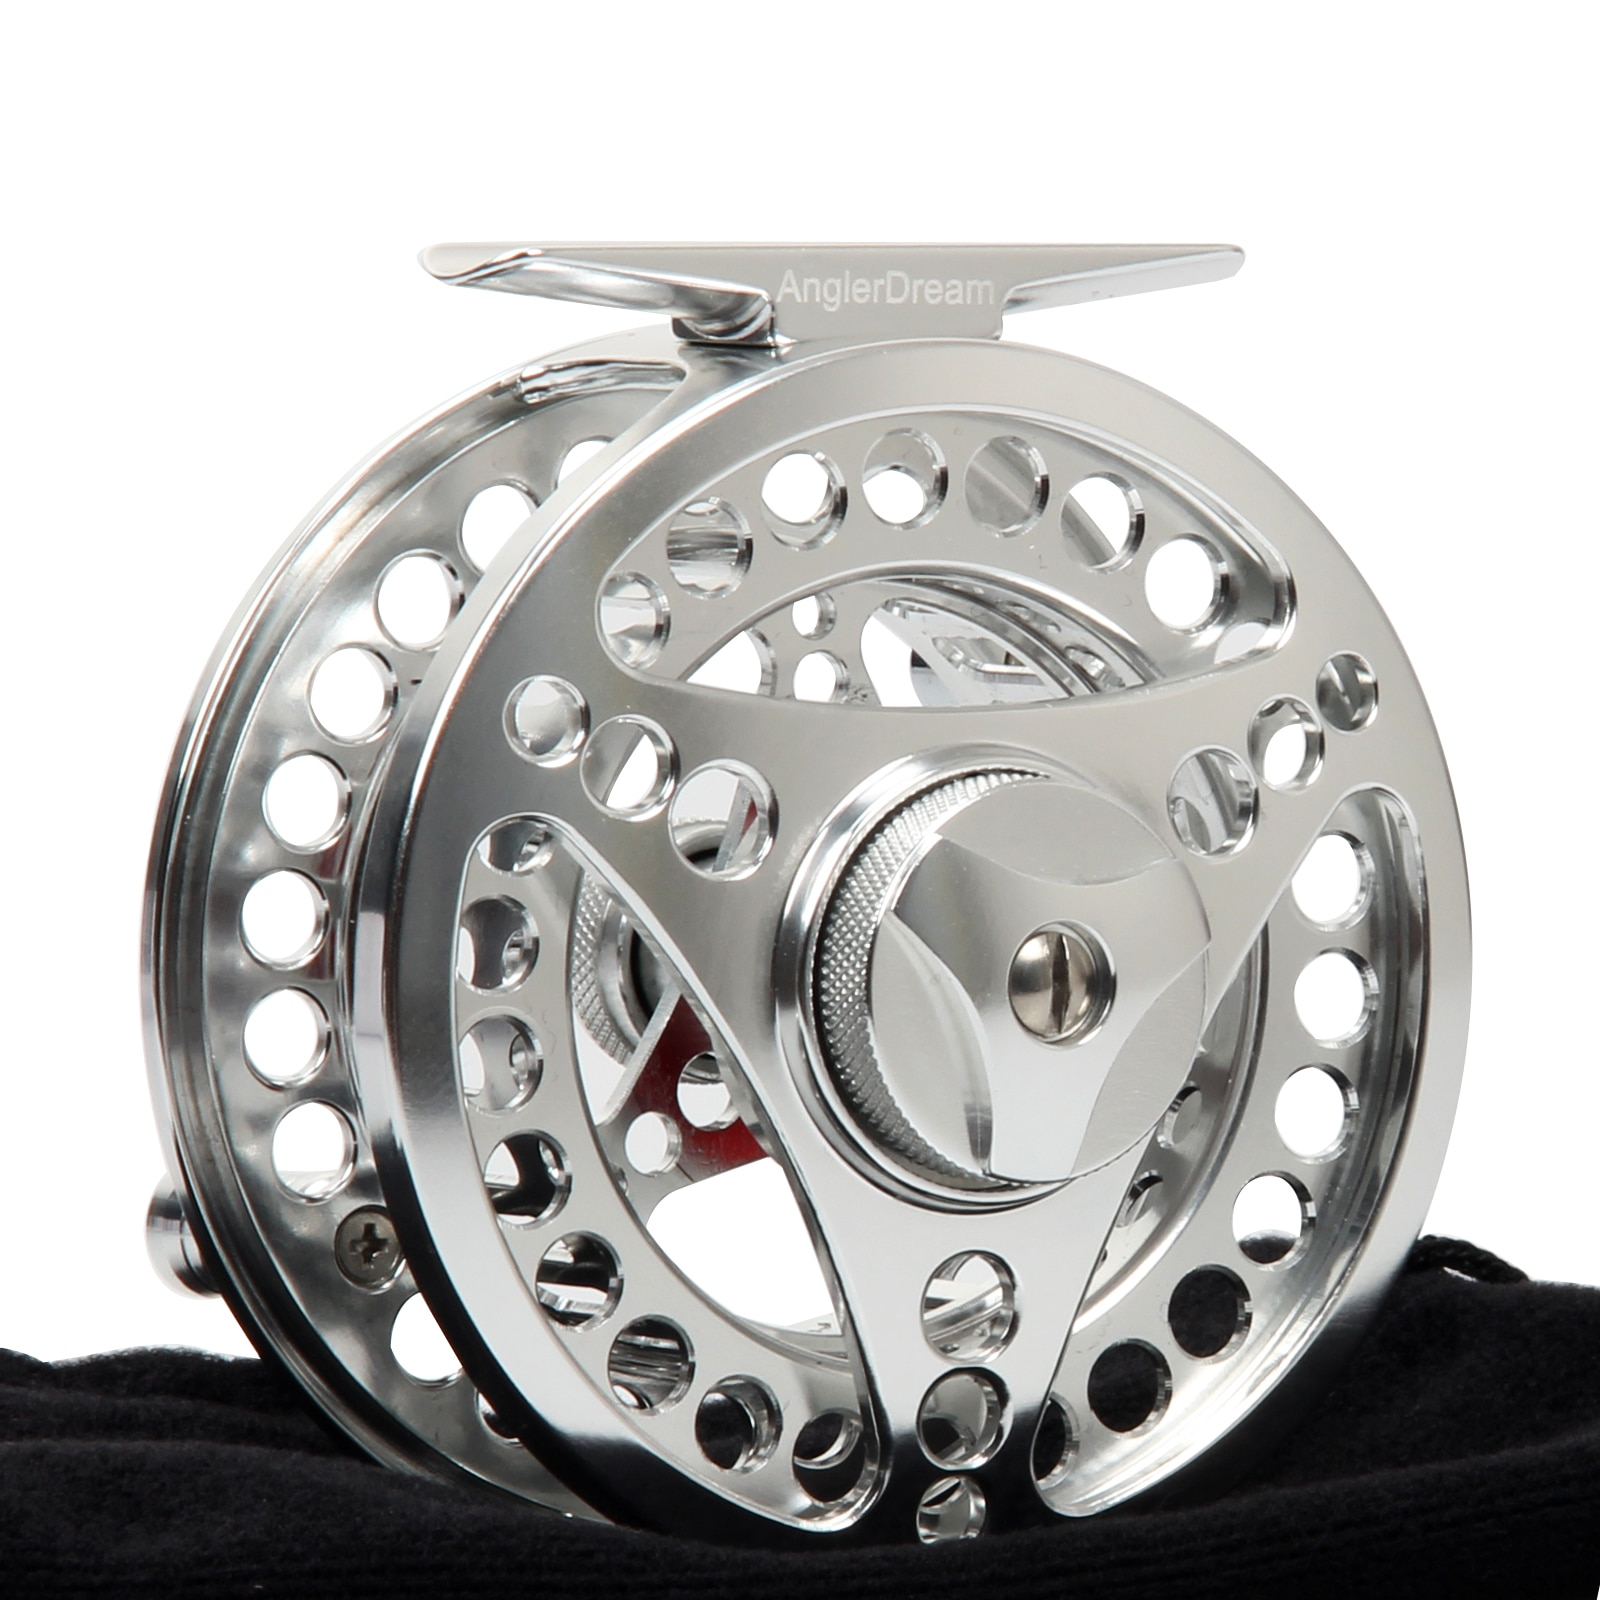 Fly Fishing Rod and Reel Combo 9' 5WT 4-Sec Rod & Fly Fishing Reel 5/6 Tapered WF5F Fly Line Set enlarge